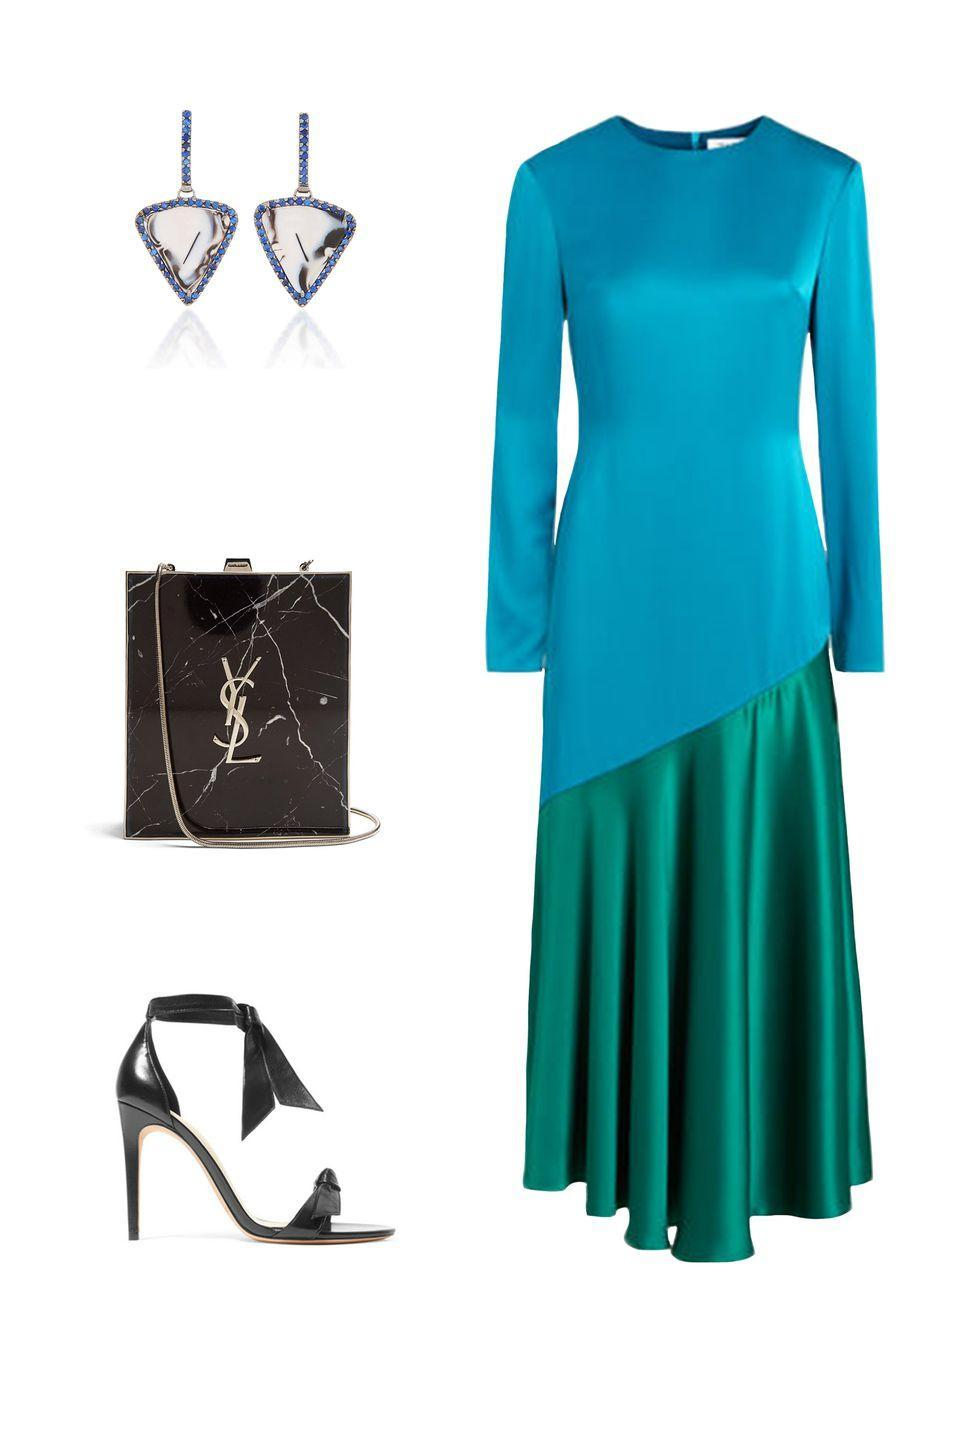 """<p>For city weddings, sleek color-blocking paired with modern metallics and soft, flowing fabrics are the perfect combination of bohemian and badass.</p><p><em><strong>Racil </strong>contrasting midi dress, $795, <a rel=""""nofollow noopener"""" href=""""https://www.themodist.com/en/designers/designer-a-z/racil/greta-contrasting-midi-dress/262781115.html?cgid=RAC&dwvar_262781115_color=1115&wgu=13217_1289215_15338992423427_c2bbdb0720&wgexpiry=1541675242&utm_source=ShopBAZAAR&utm_medium=affiliate&utm_campaign=1289215"""" target=""""_blank"""" data-ylk=""""slk:shopBAZAAR.com"""" class=""""link rapid-noclick-resp"""">shopBAZAAR.com</a>; <strong>Alexandre Birman</strong> sandals, $595, <a rel=""""nofollow noopener"""" href=""""https://www.net-a-porter.com/us/en/product/1063438/Alexandre_Birman/clarita-bow-embellished-leather-sandals"""" target=""""_blank"""" data-ylk=""""slk:netaporter.com"""" class=""""link rapid-noclick-resp"""">netaporter.com</a>;<strong> Saint Laurent</strong> box clutch, $3,550, <a rel=""""nofollow noopener"""" href=""""https://www.matchesfashion.com/us/products/Saint-Laurent-Tuxedo-box-clutch--1186293"""" target=""""_blank"""" data-ylk=""""slk:matchesfashion.com"""" class=""""link rapid-noclick-resp"""">matchesfashion.com</a>; <strong>Kimberly McDonald </strong>earrings, $7,975, <a rel=""""nofollow noopener"""" href=""""https://www.modaoperandi.com/kimberly-mcdonald-r19/one-of-a-kind-zebra-opal-triangle-drops-with-sapphires-set-in-18k-white-gold?size=OS"""" target=""""_blank"""" data-ylk=""""slk:modaoperandi.com"""" class=""""link rapid-noclick-resp"""">modaoperandi.com</a> .</em></p>"""